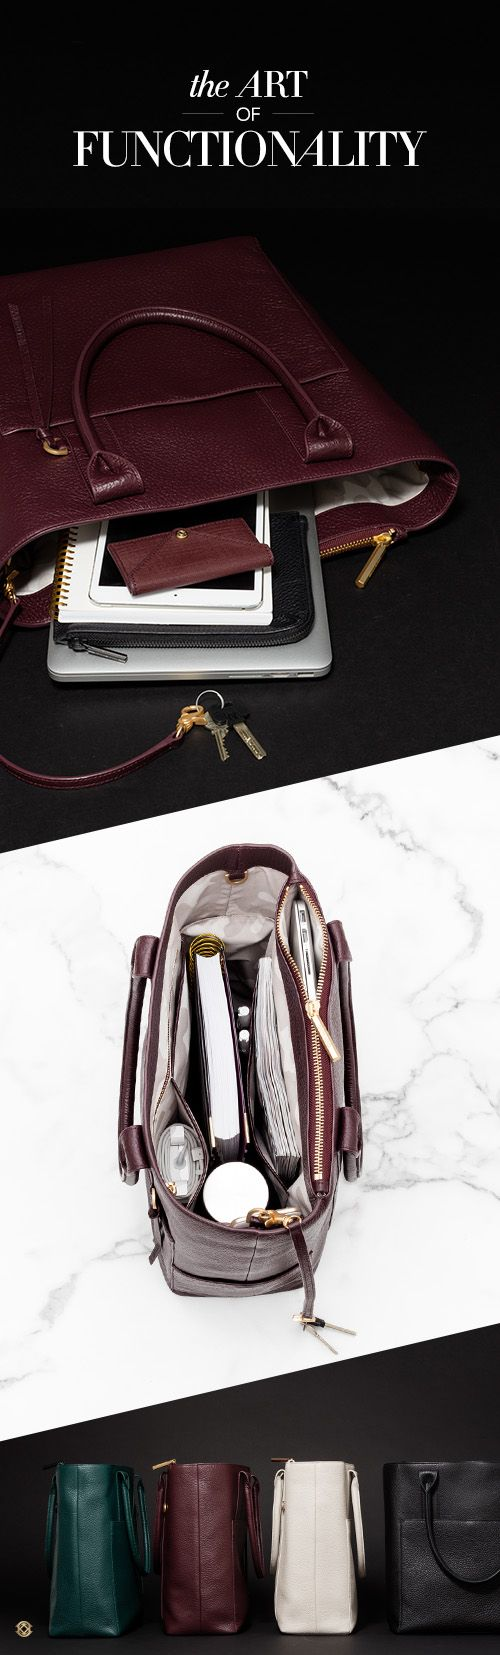 All bags should be made like this. A pocket for everything so you can carry it all.